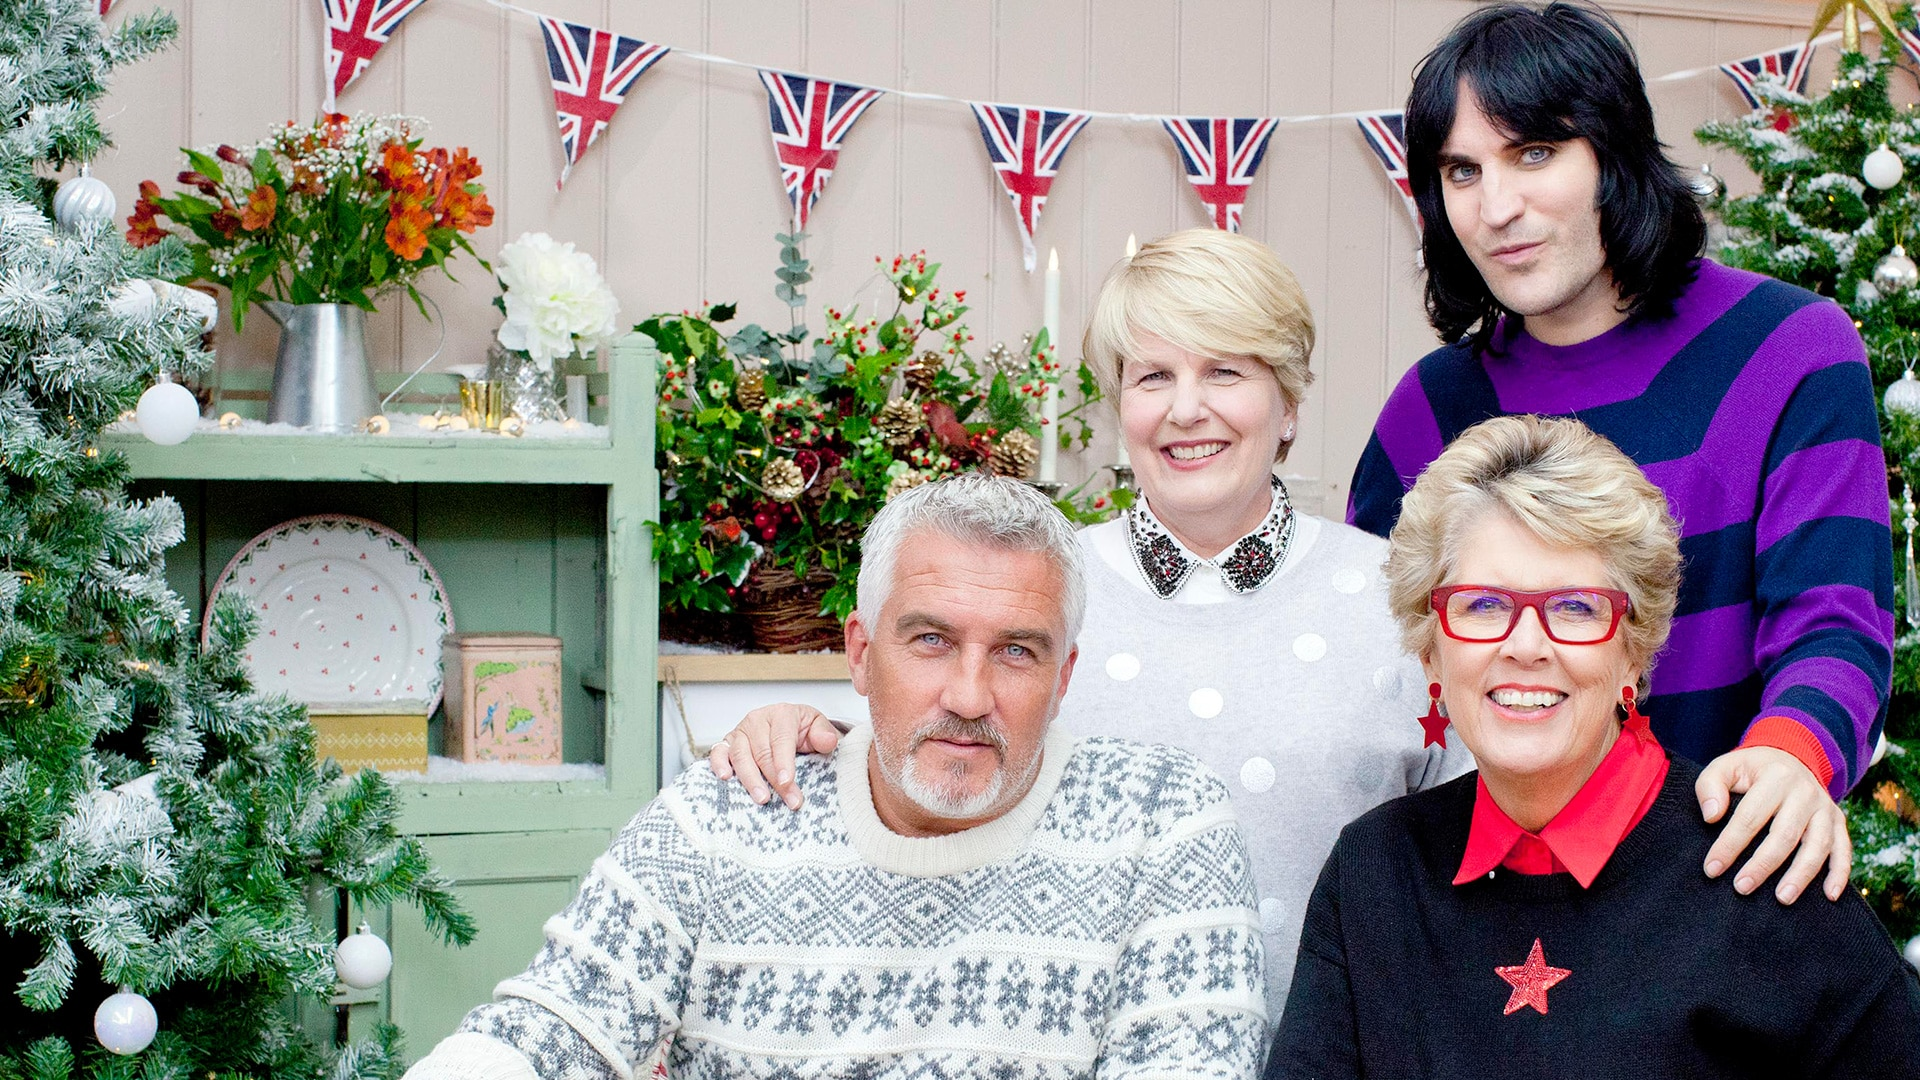 the great british bake off s09e03 download